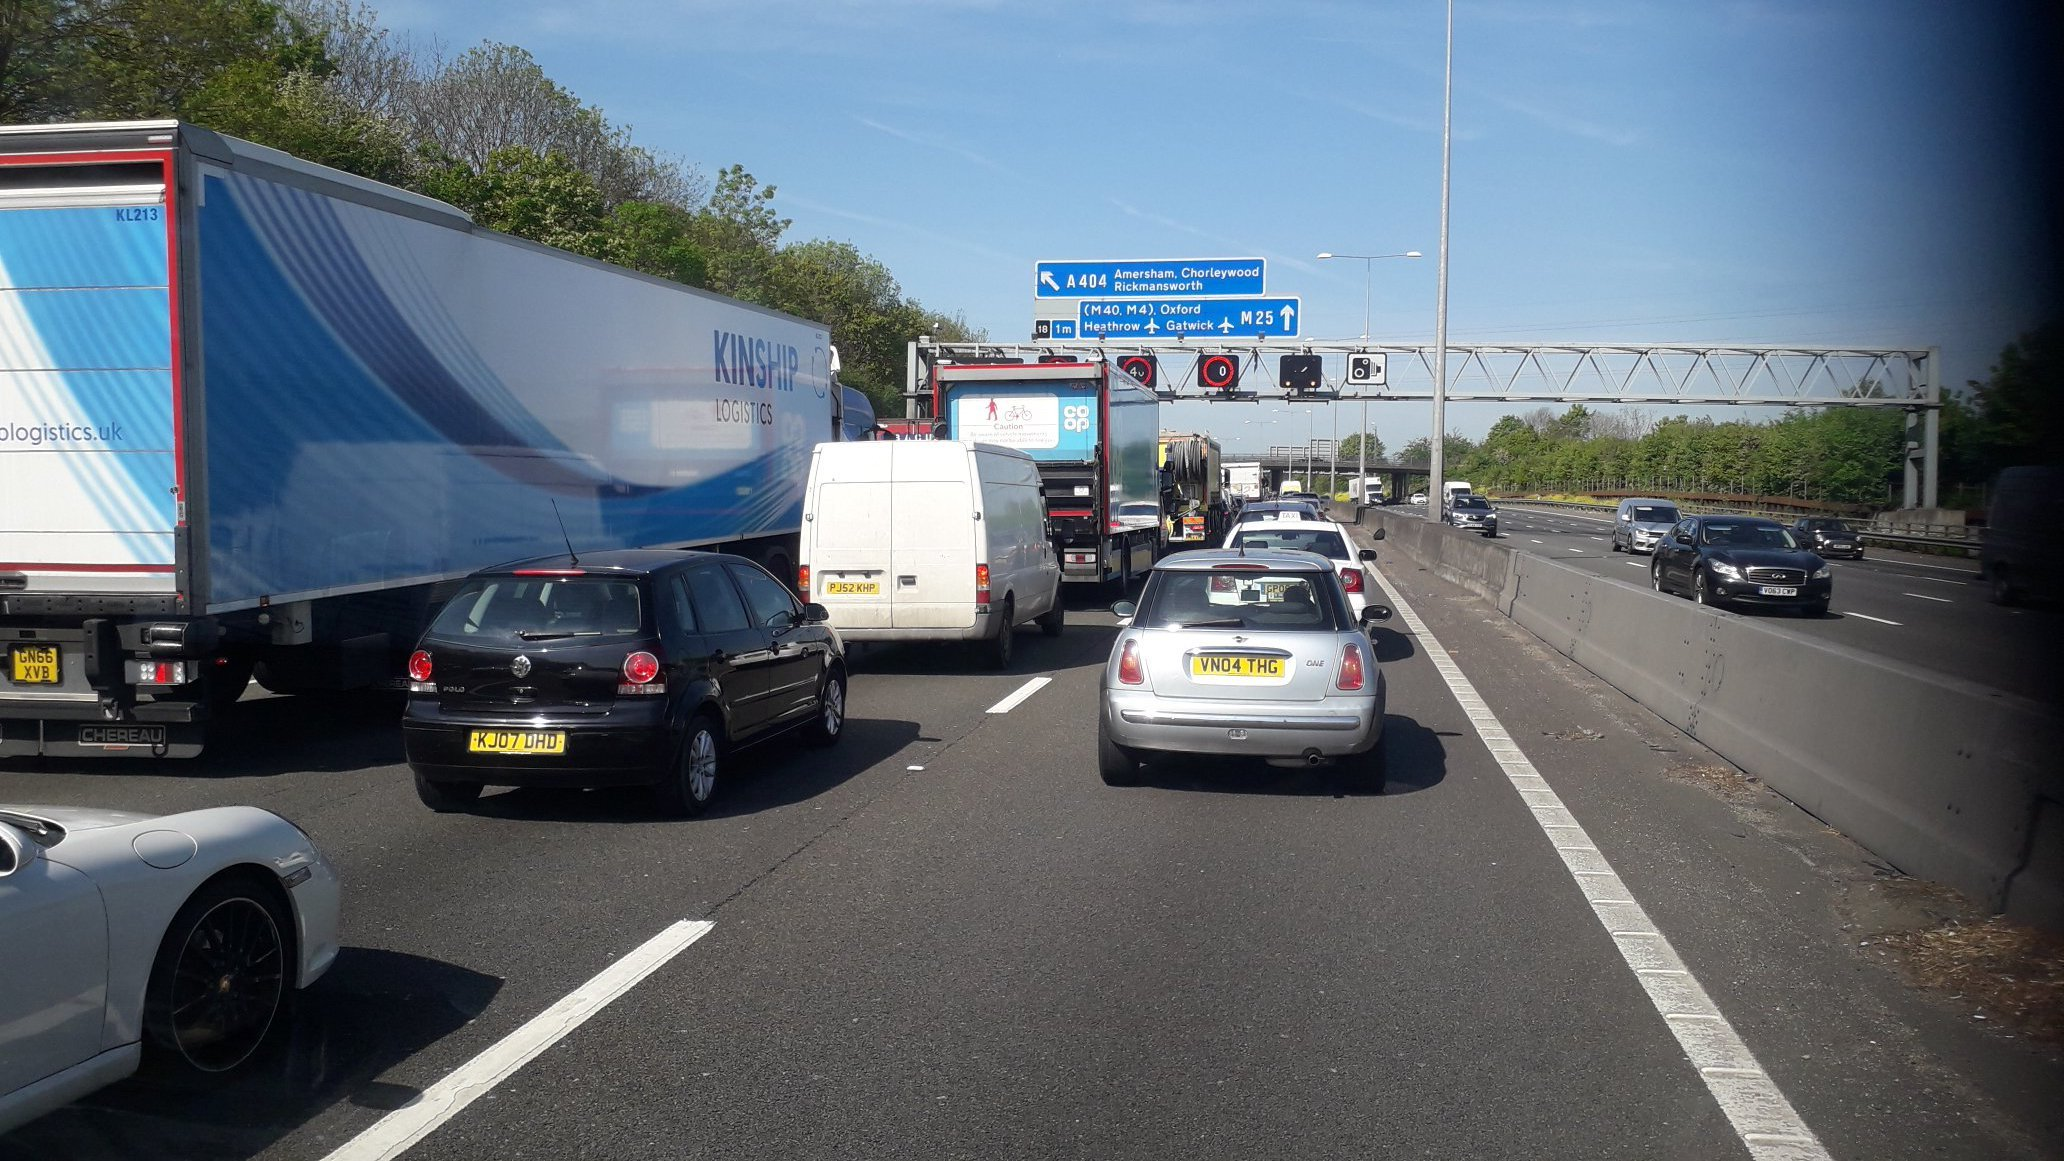 Tailbacks on the M25 today. Photo credit: Schmid Landscapes